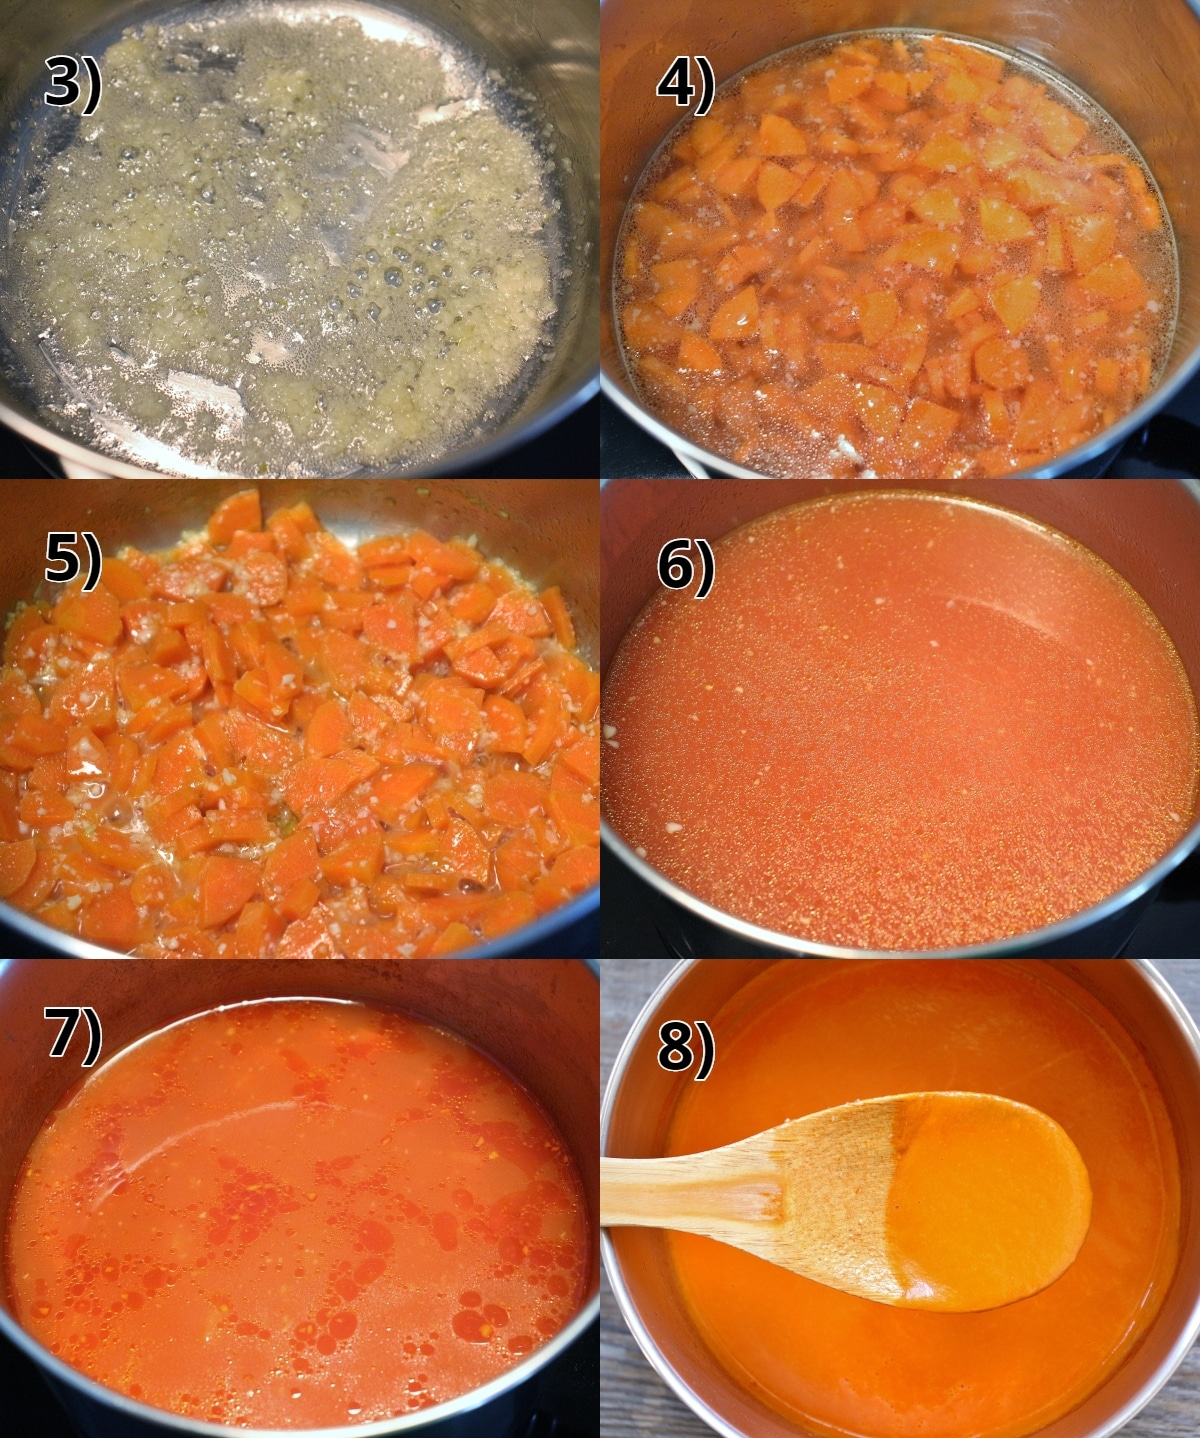 Step by step photos of how to make Venetian sauce with carrots and garlic